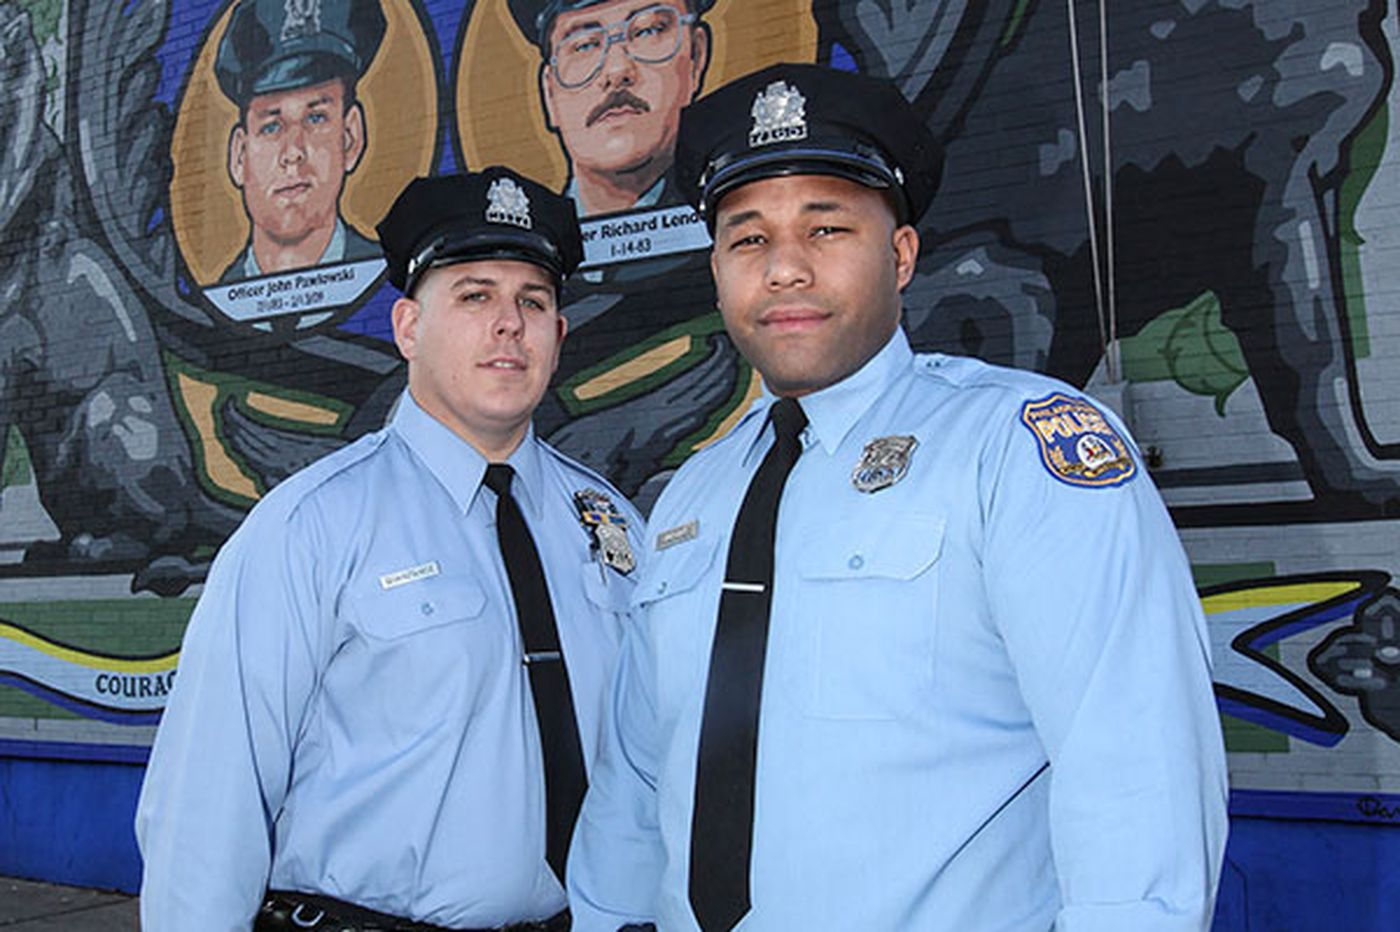 Police-issued tourniquets save 2 lives